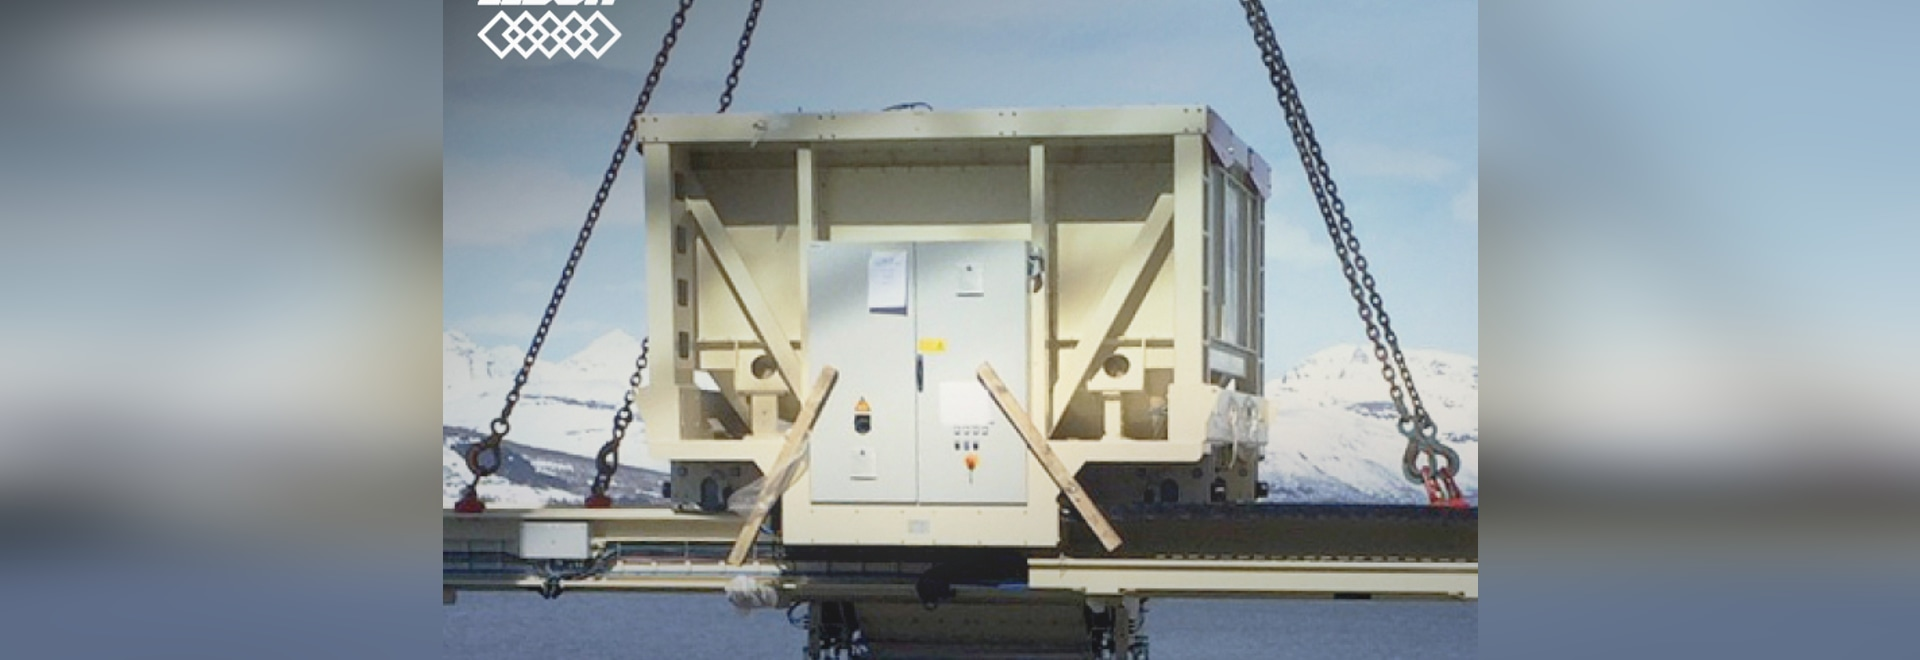 Eldon supplies electrical installation for advanced Van Aarsen bulk robot